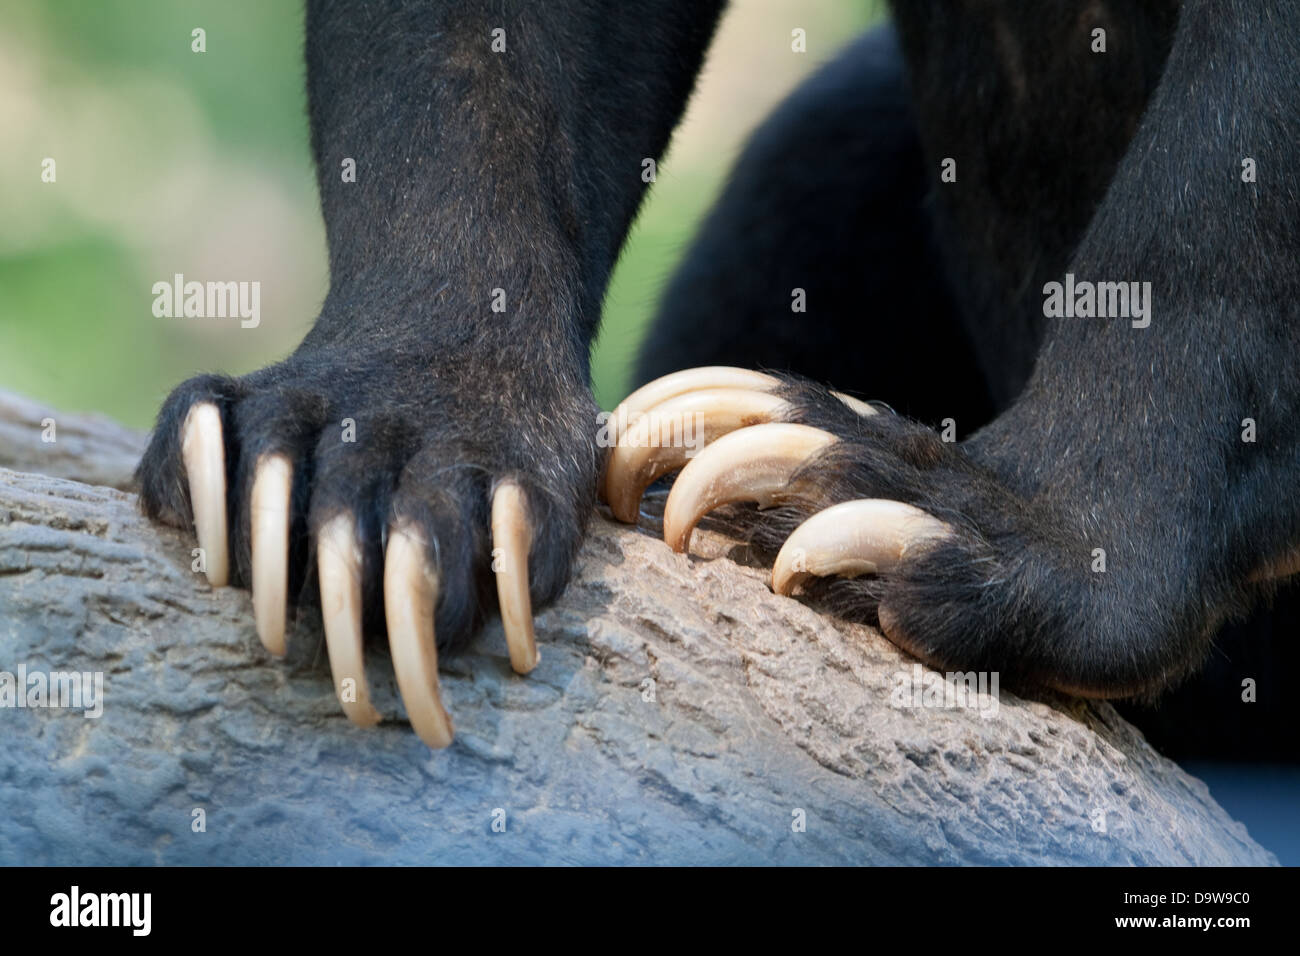 bear claws - Stock Image